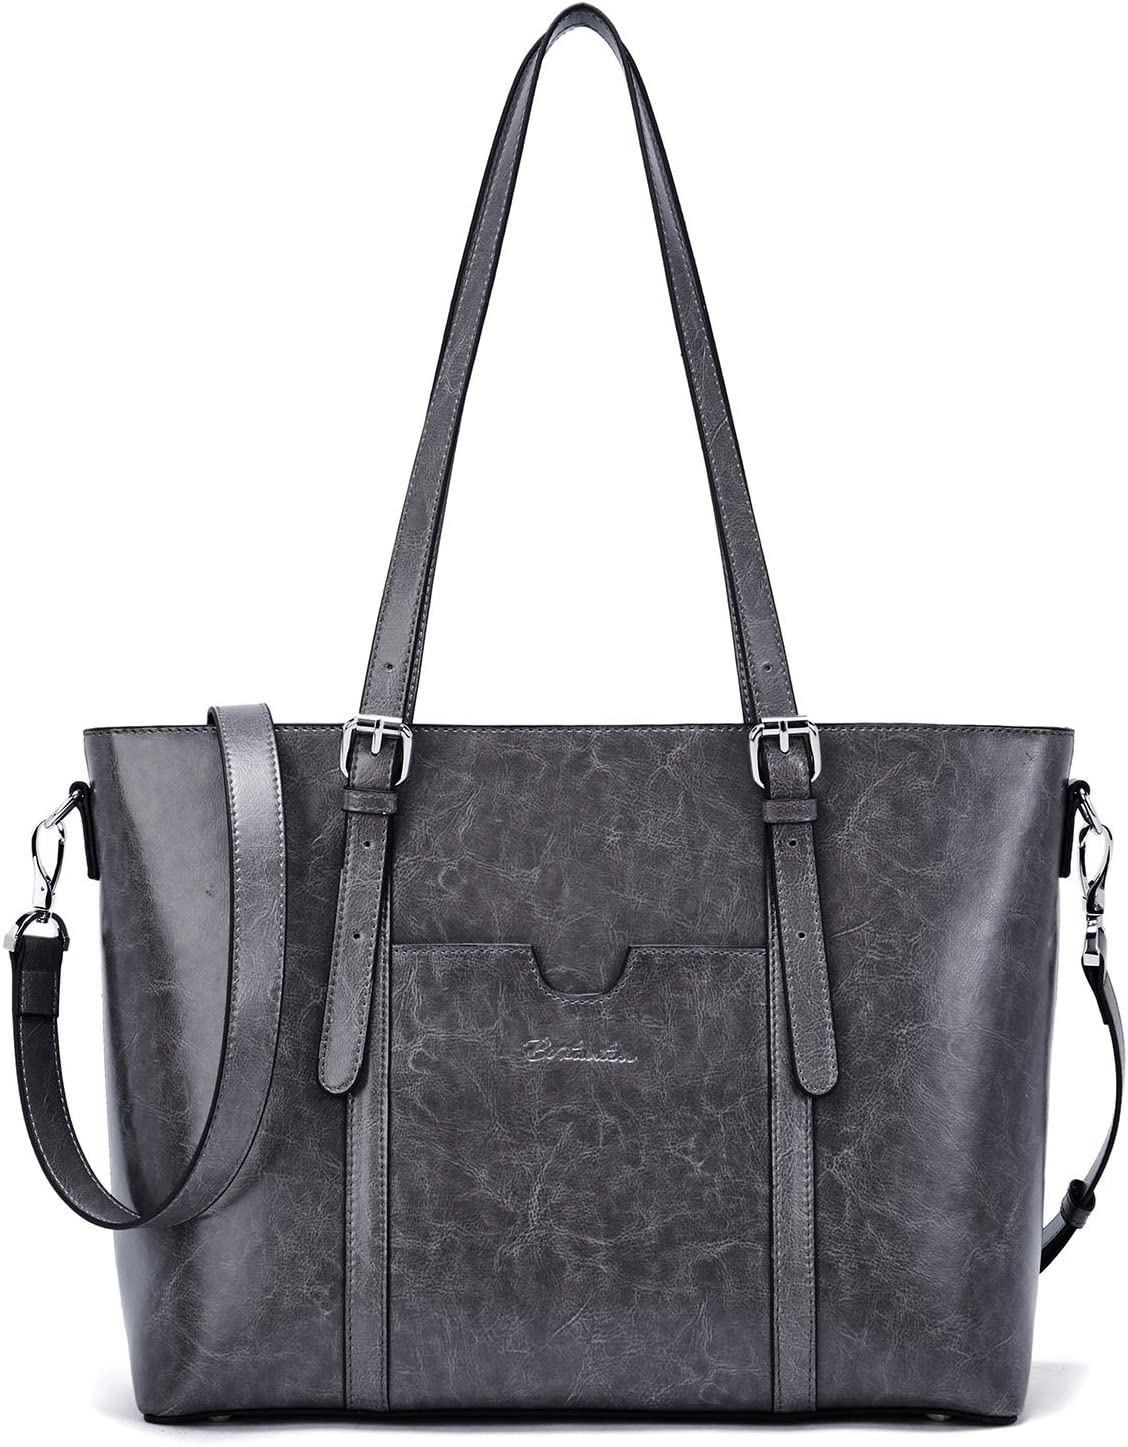 BOSTANTEN Women Leather Laptop Tote Office Shoulder Handbag Vintage Briefcase 15.6 inch Computer Work Purse Grey